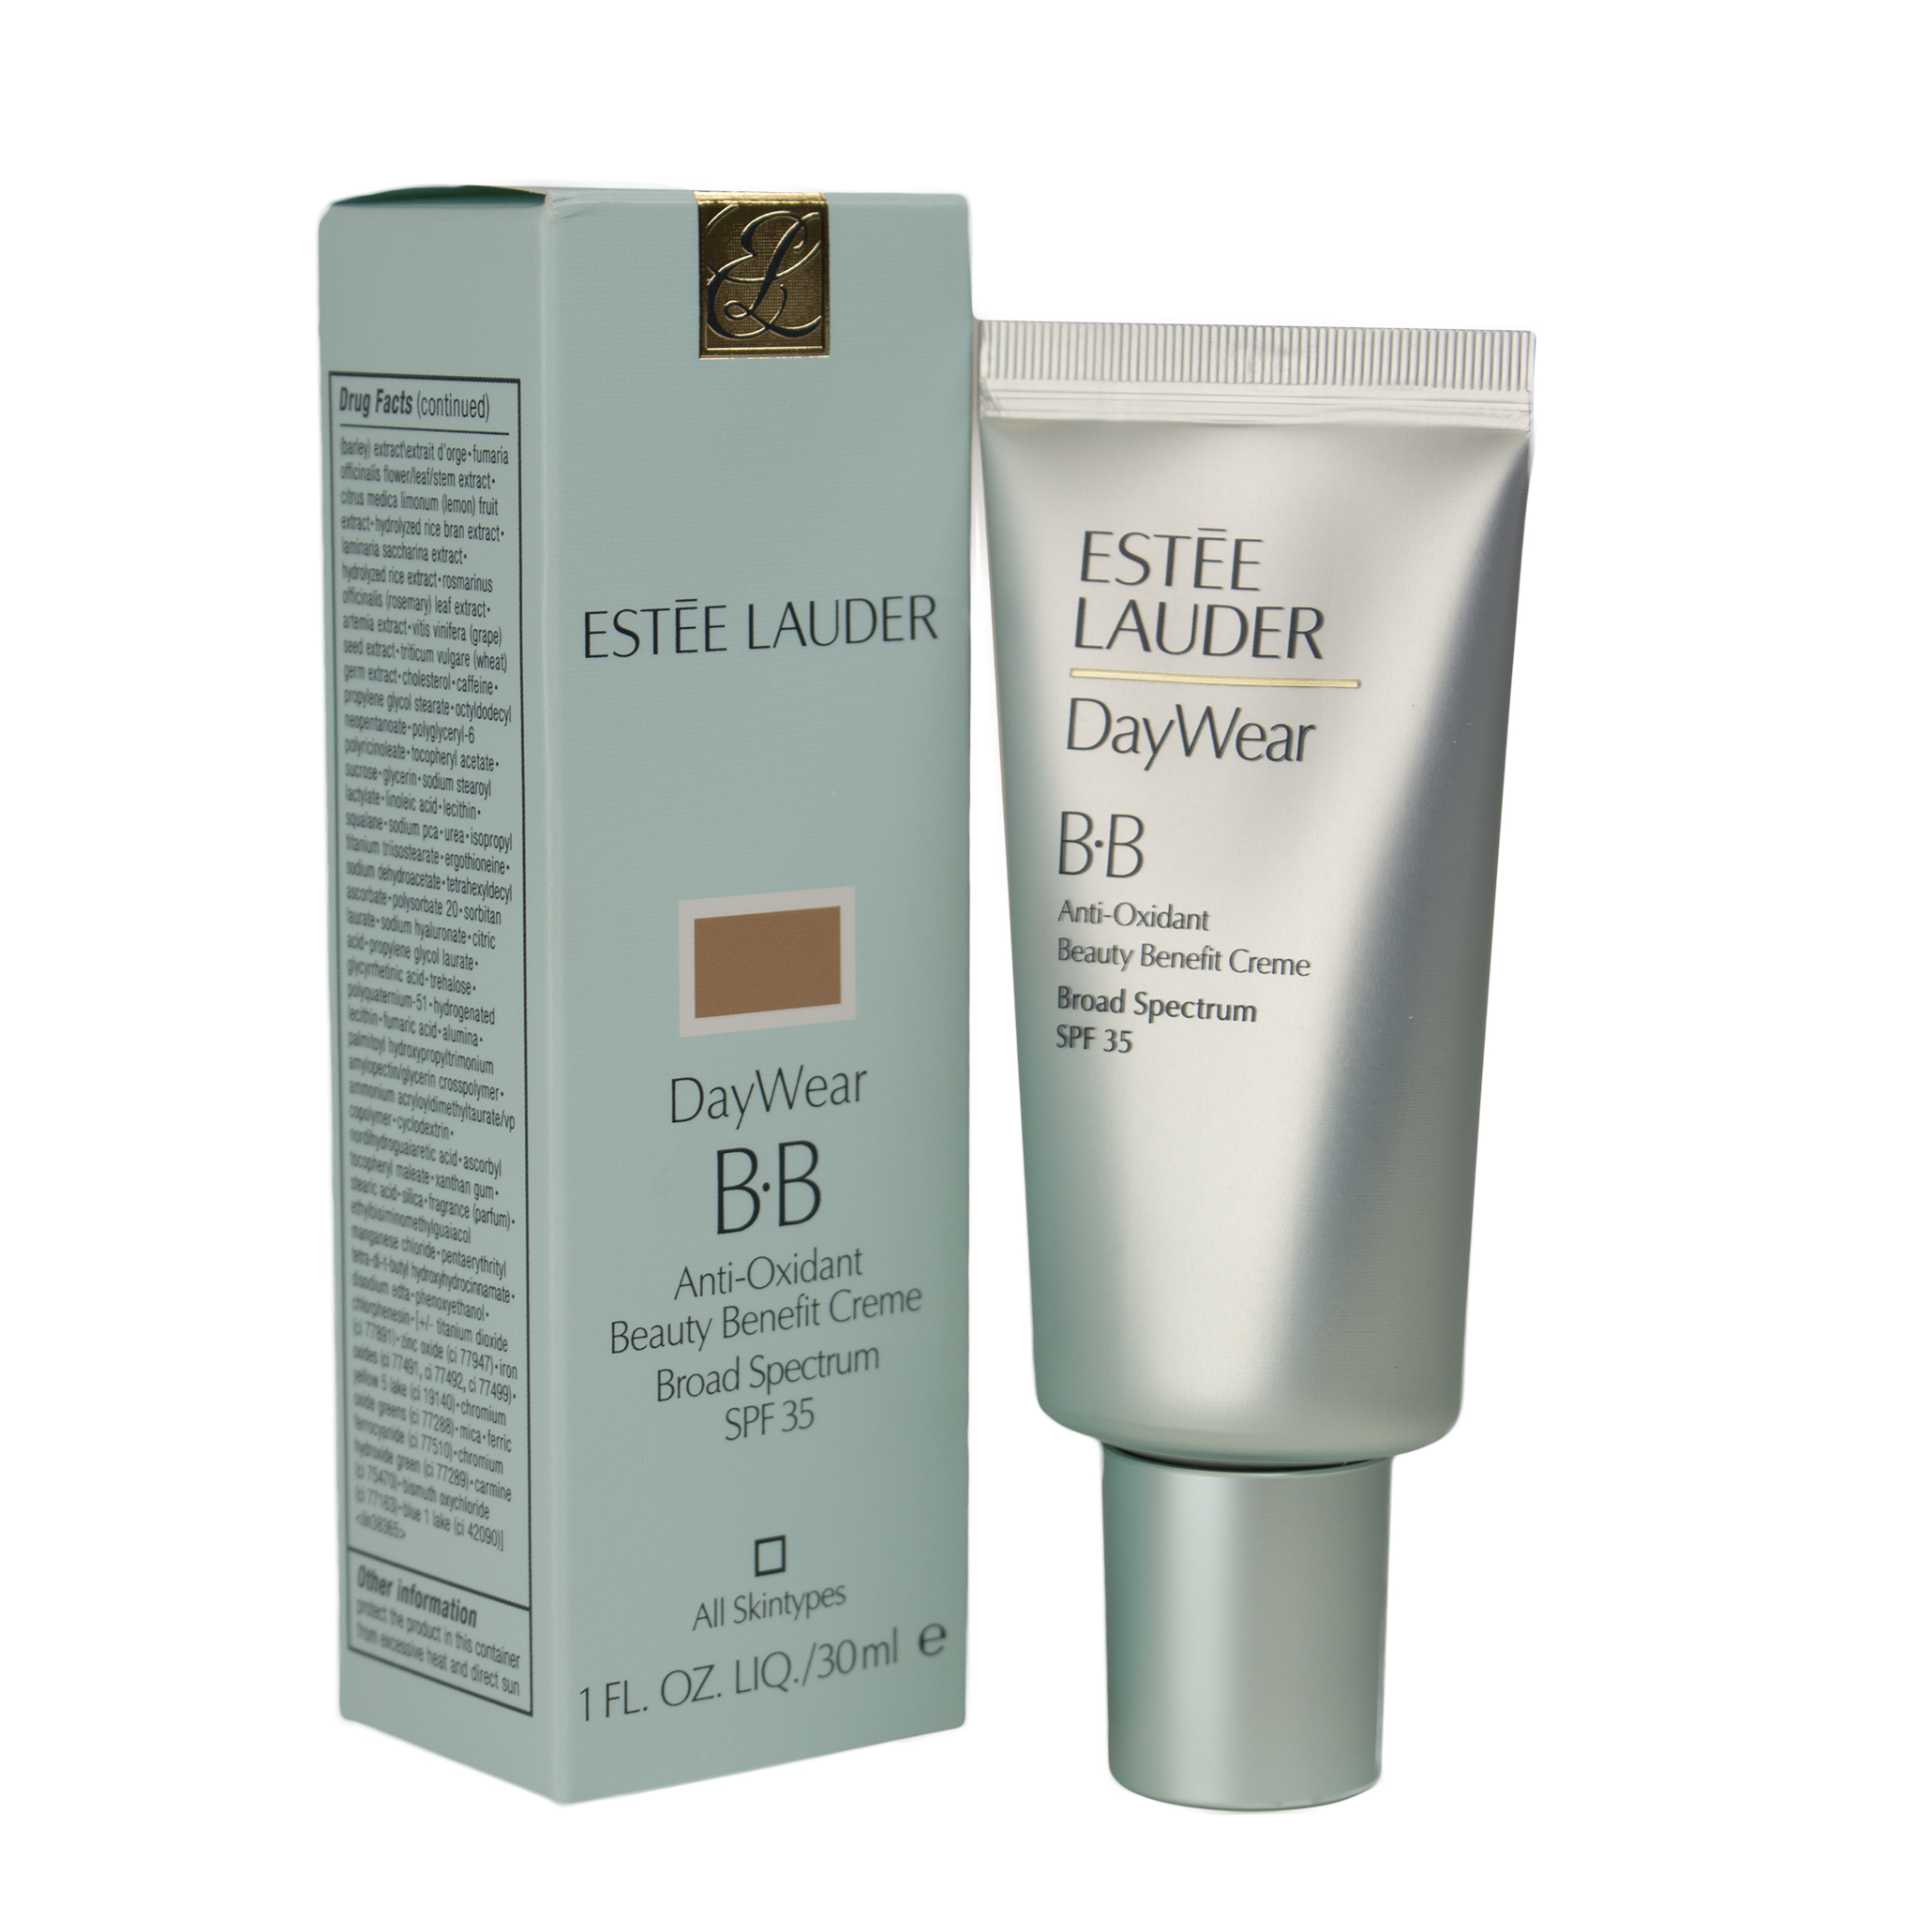 Estee Lauder DayWear Anti-Oxidant Beauty Benefit BB Creme SPF 35 1oz/30ml